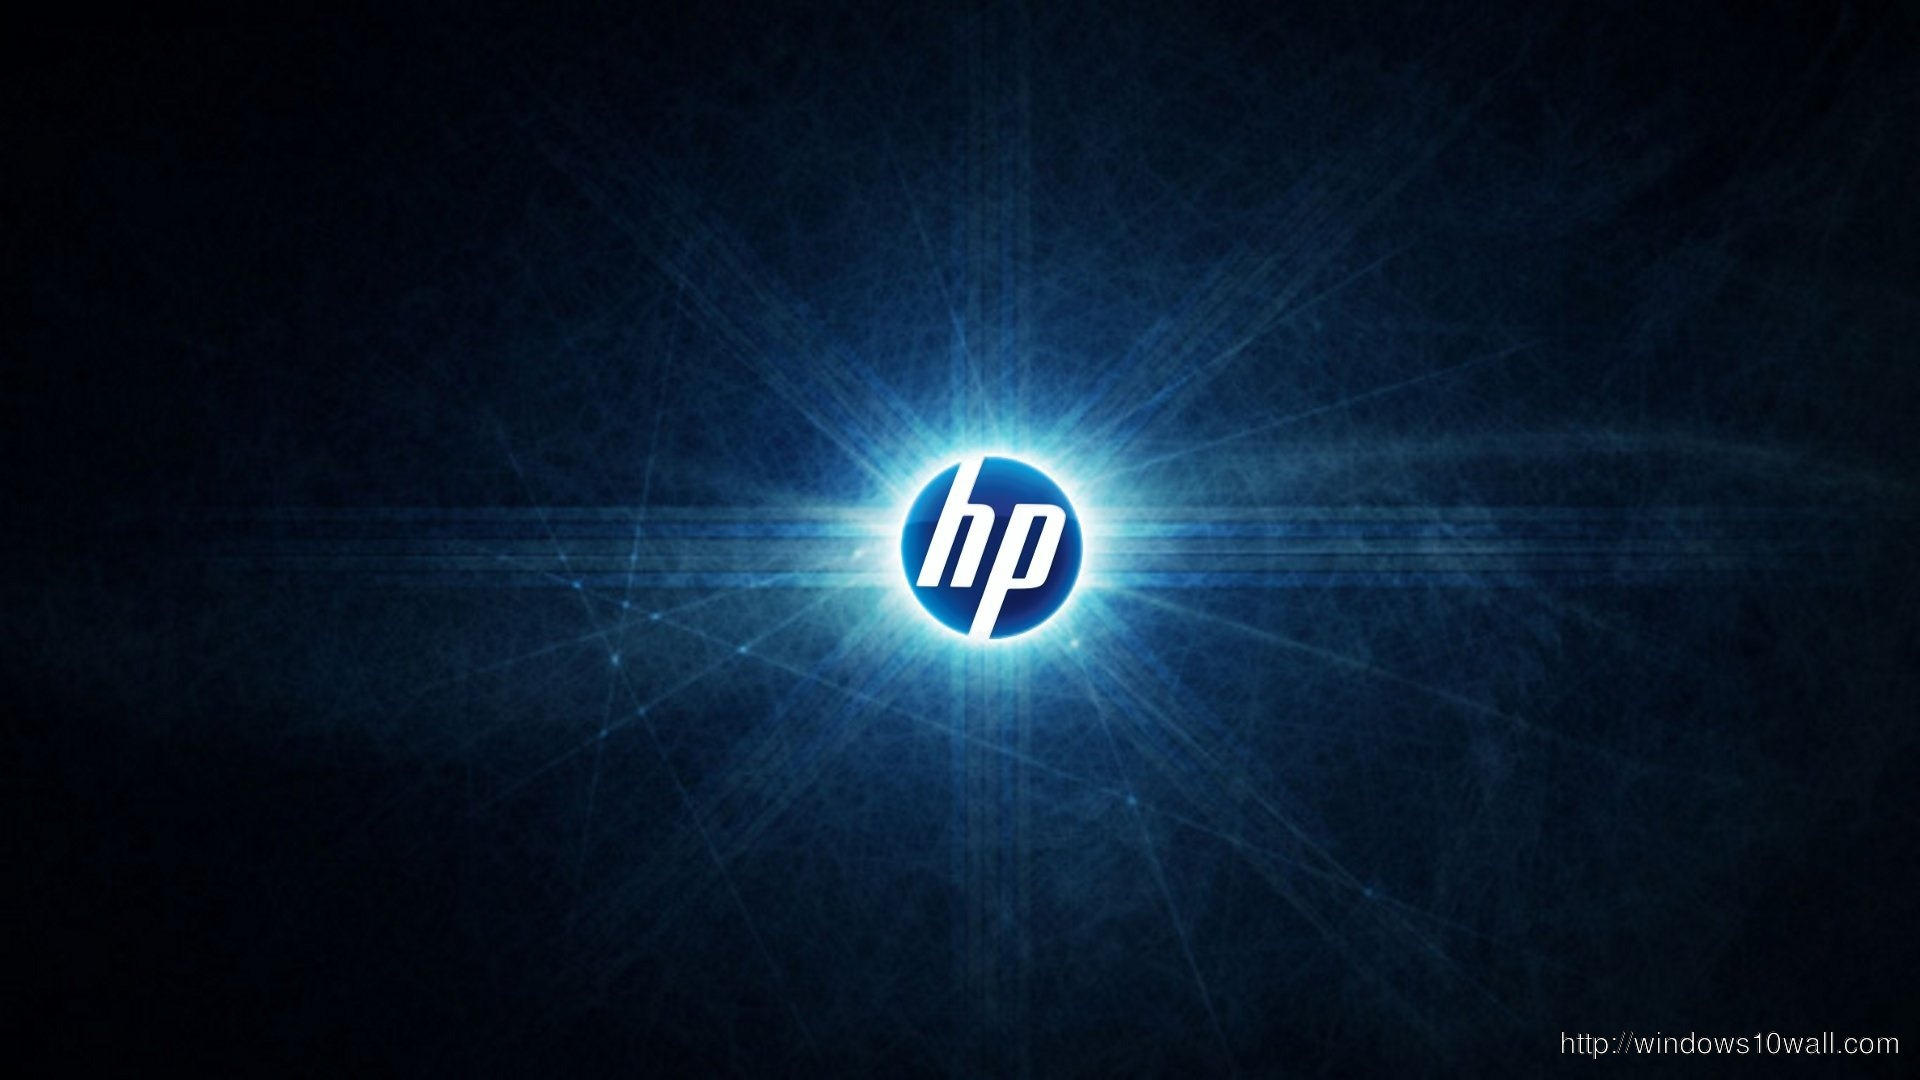 HP Background Wallpapers